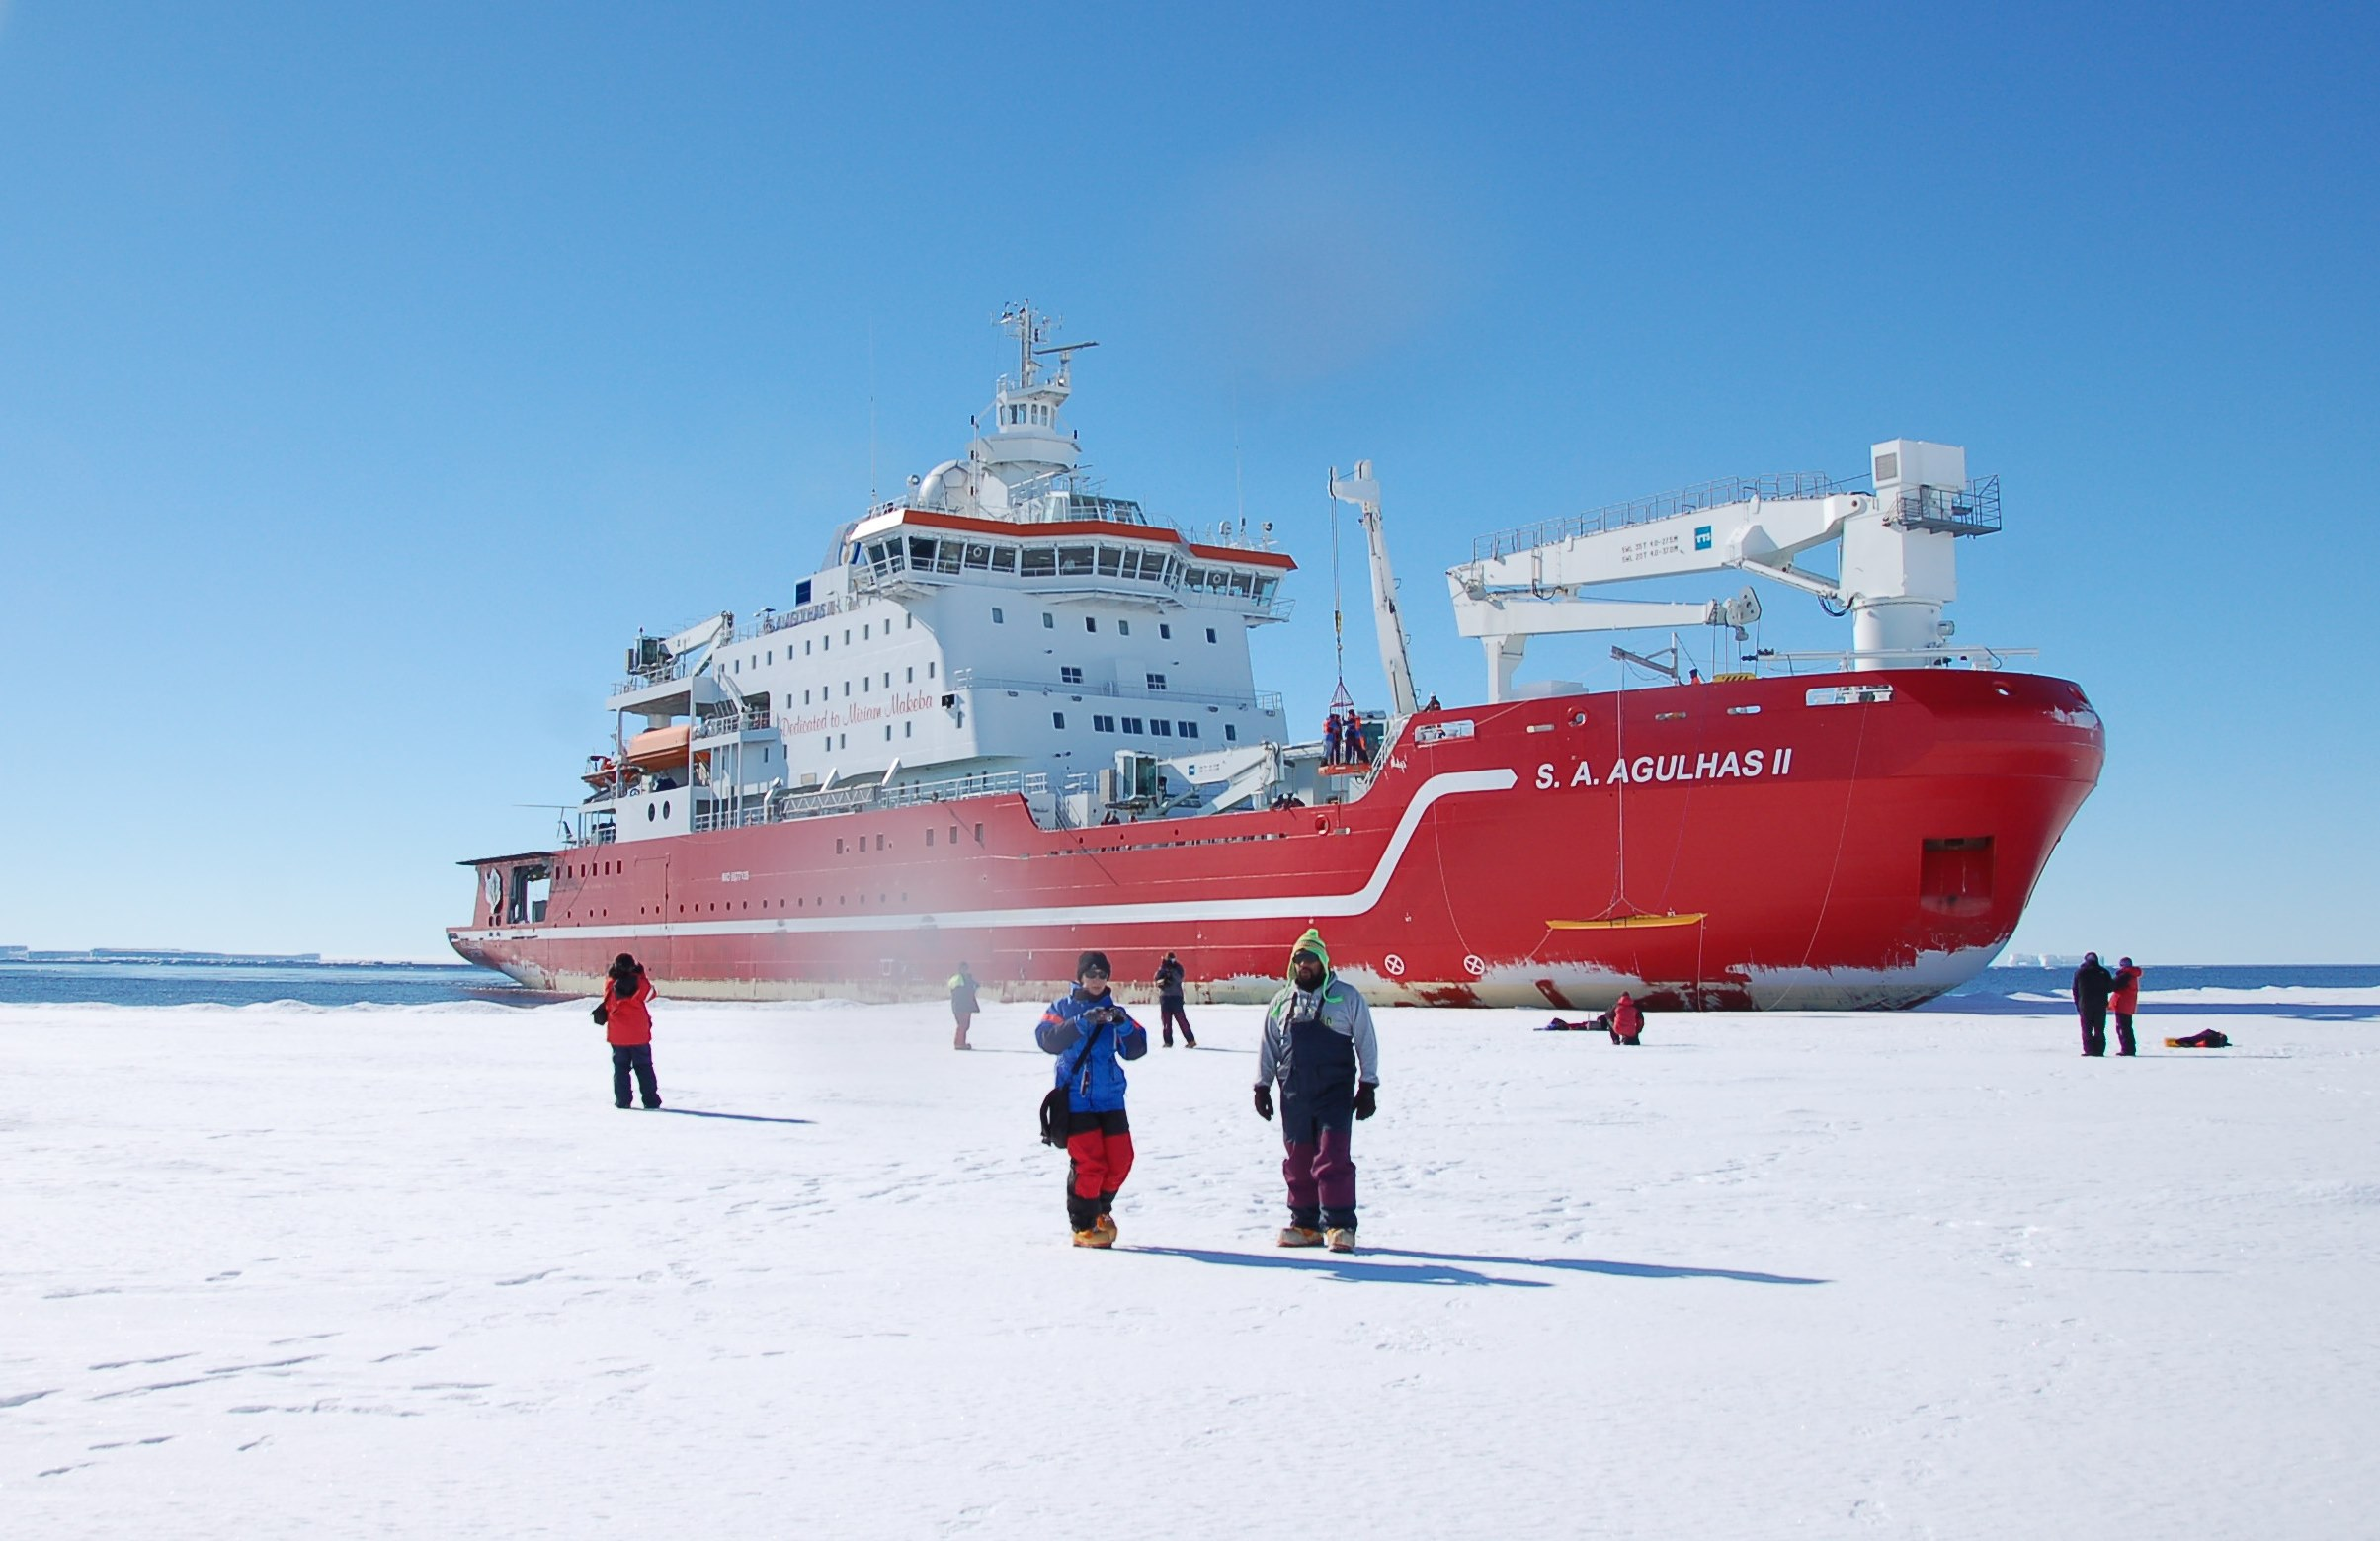 SA Algulhas II in Antarctic ice